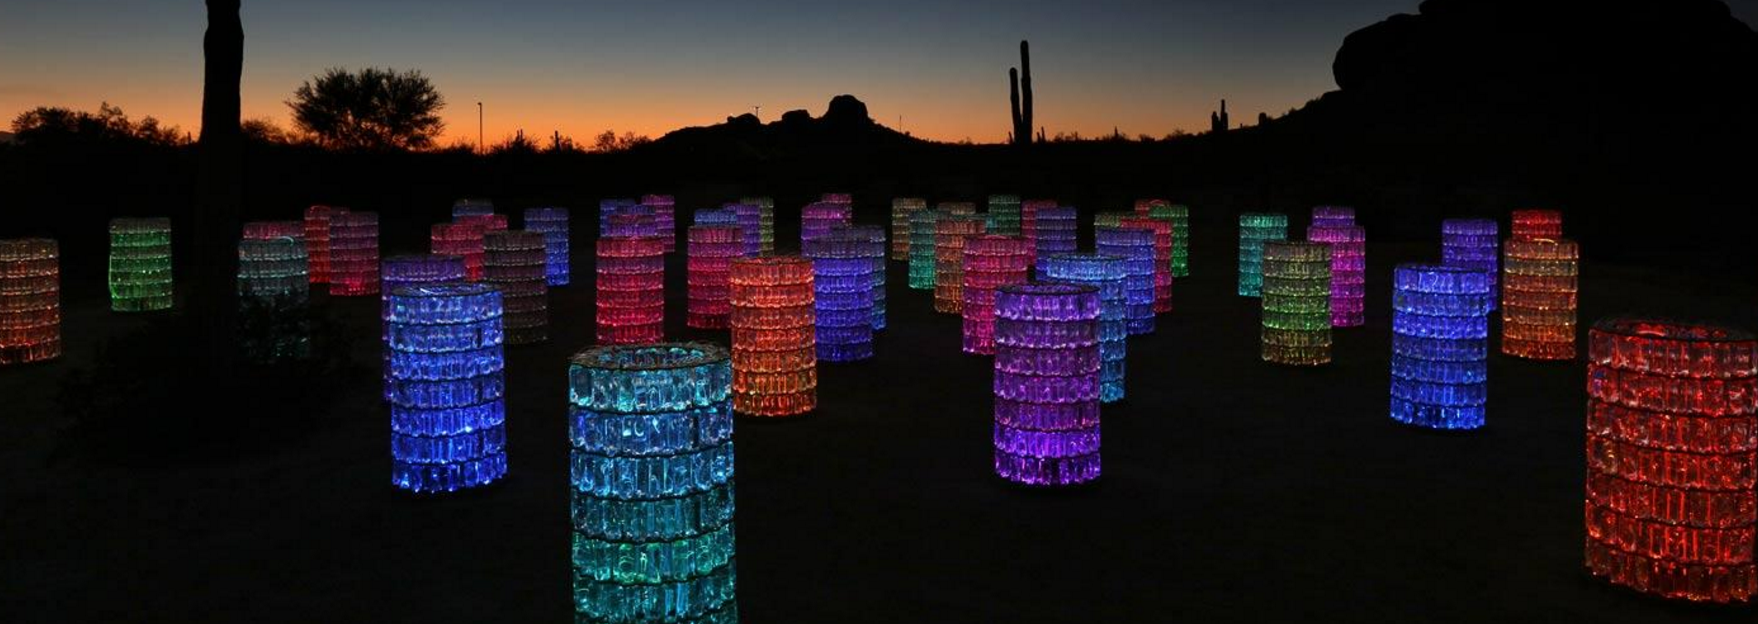 Bruce Munro Sonoran Light at the Desert Botanical Gardens